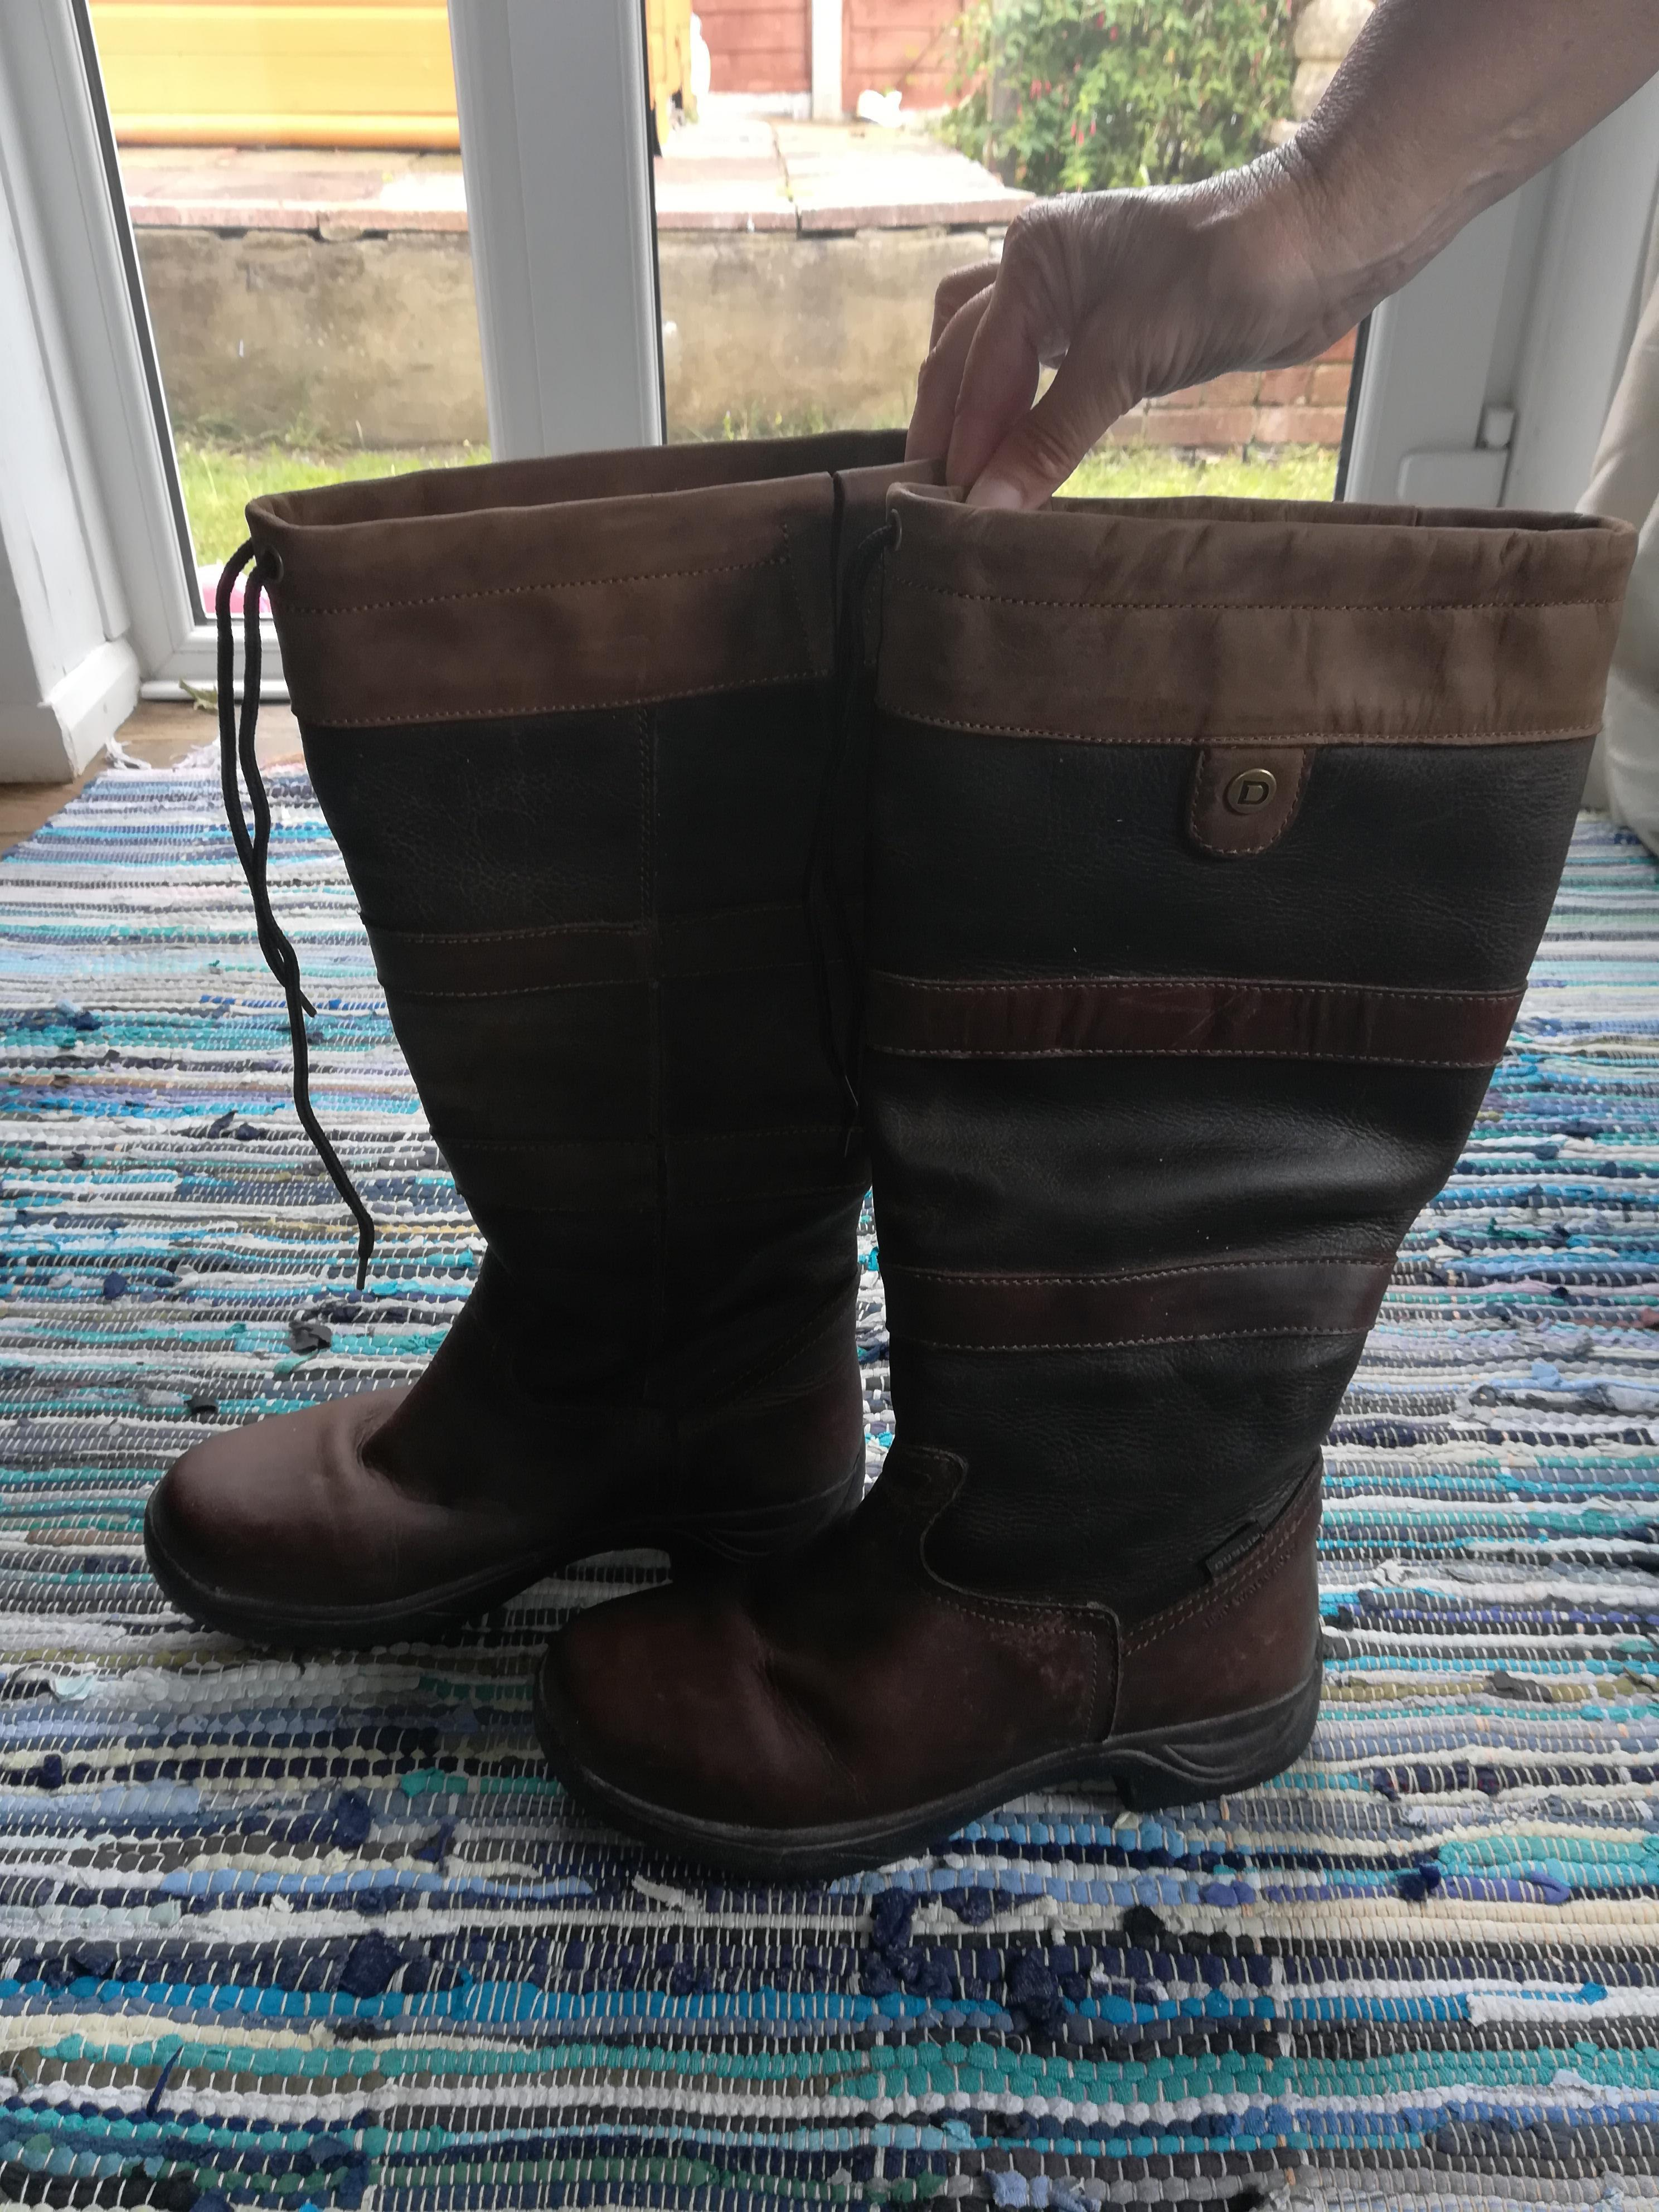 9b187b57a5f Dublin Boots size 11 - Isle Of Wight - Expired | Wightbay